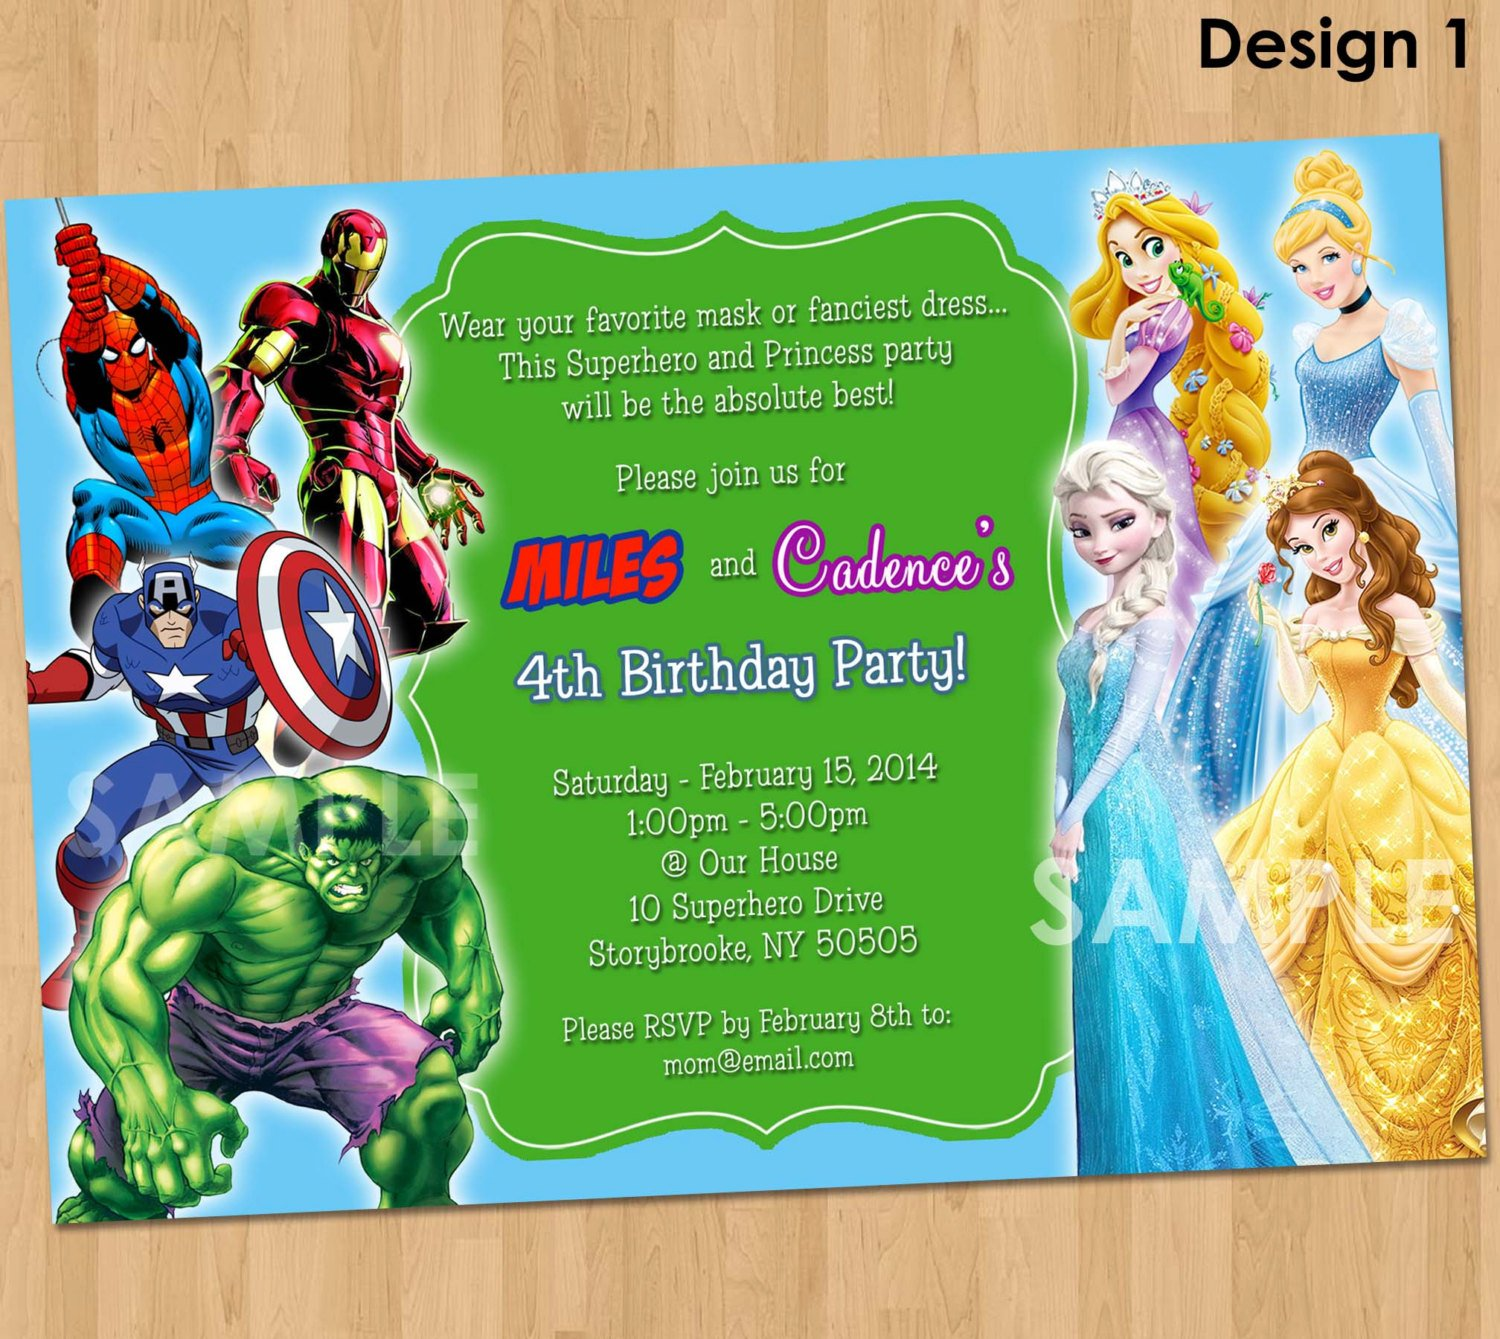 FREE Printable Superhero Birthday Invitations Bagvania FREE - Free birthday invitation templates superhero